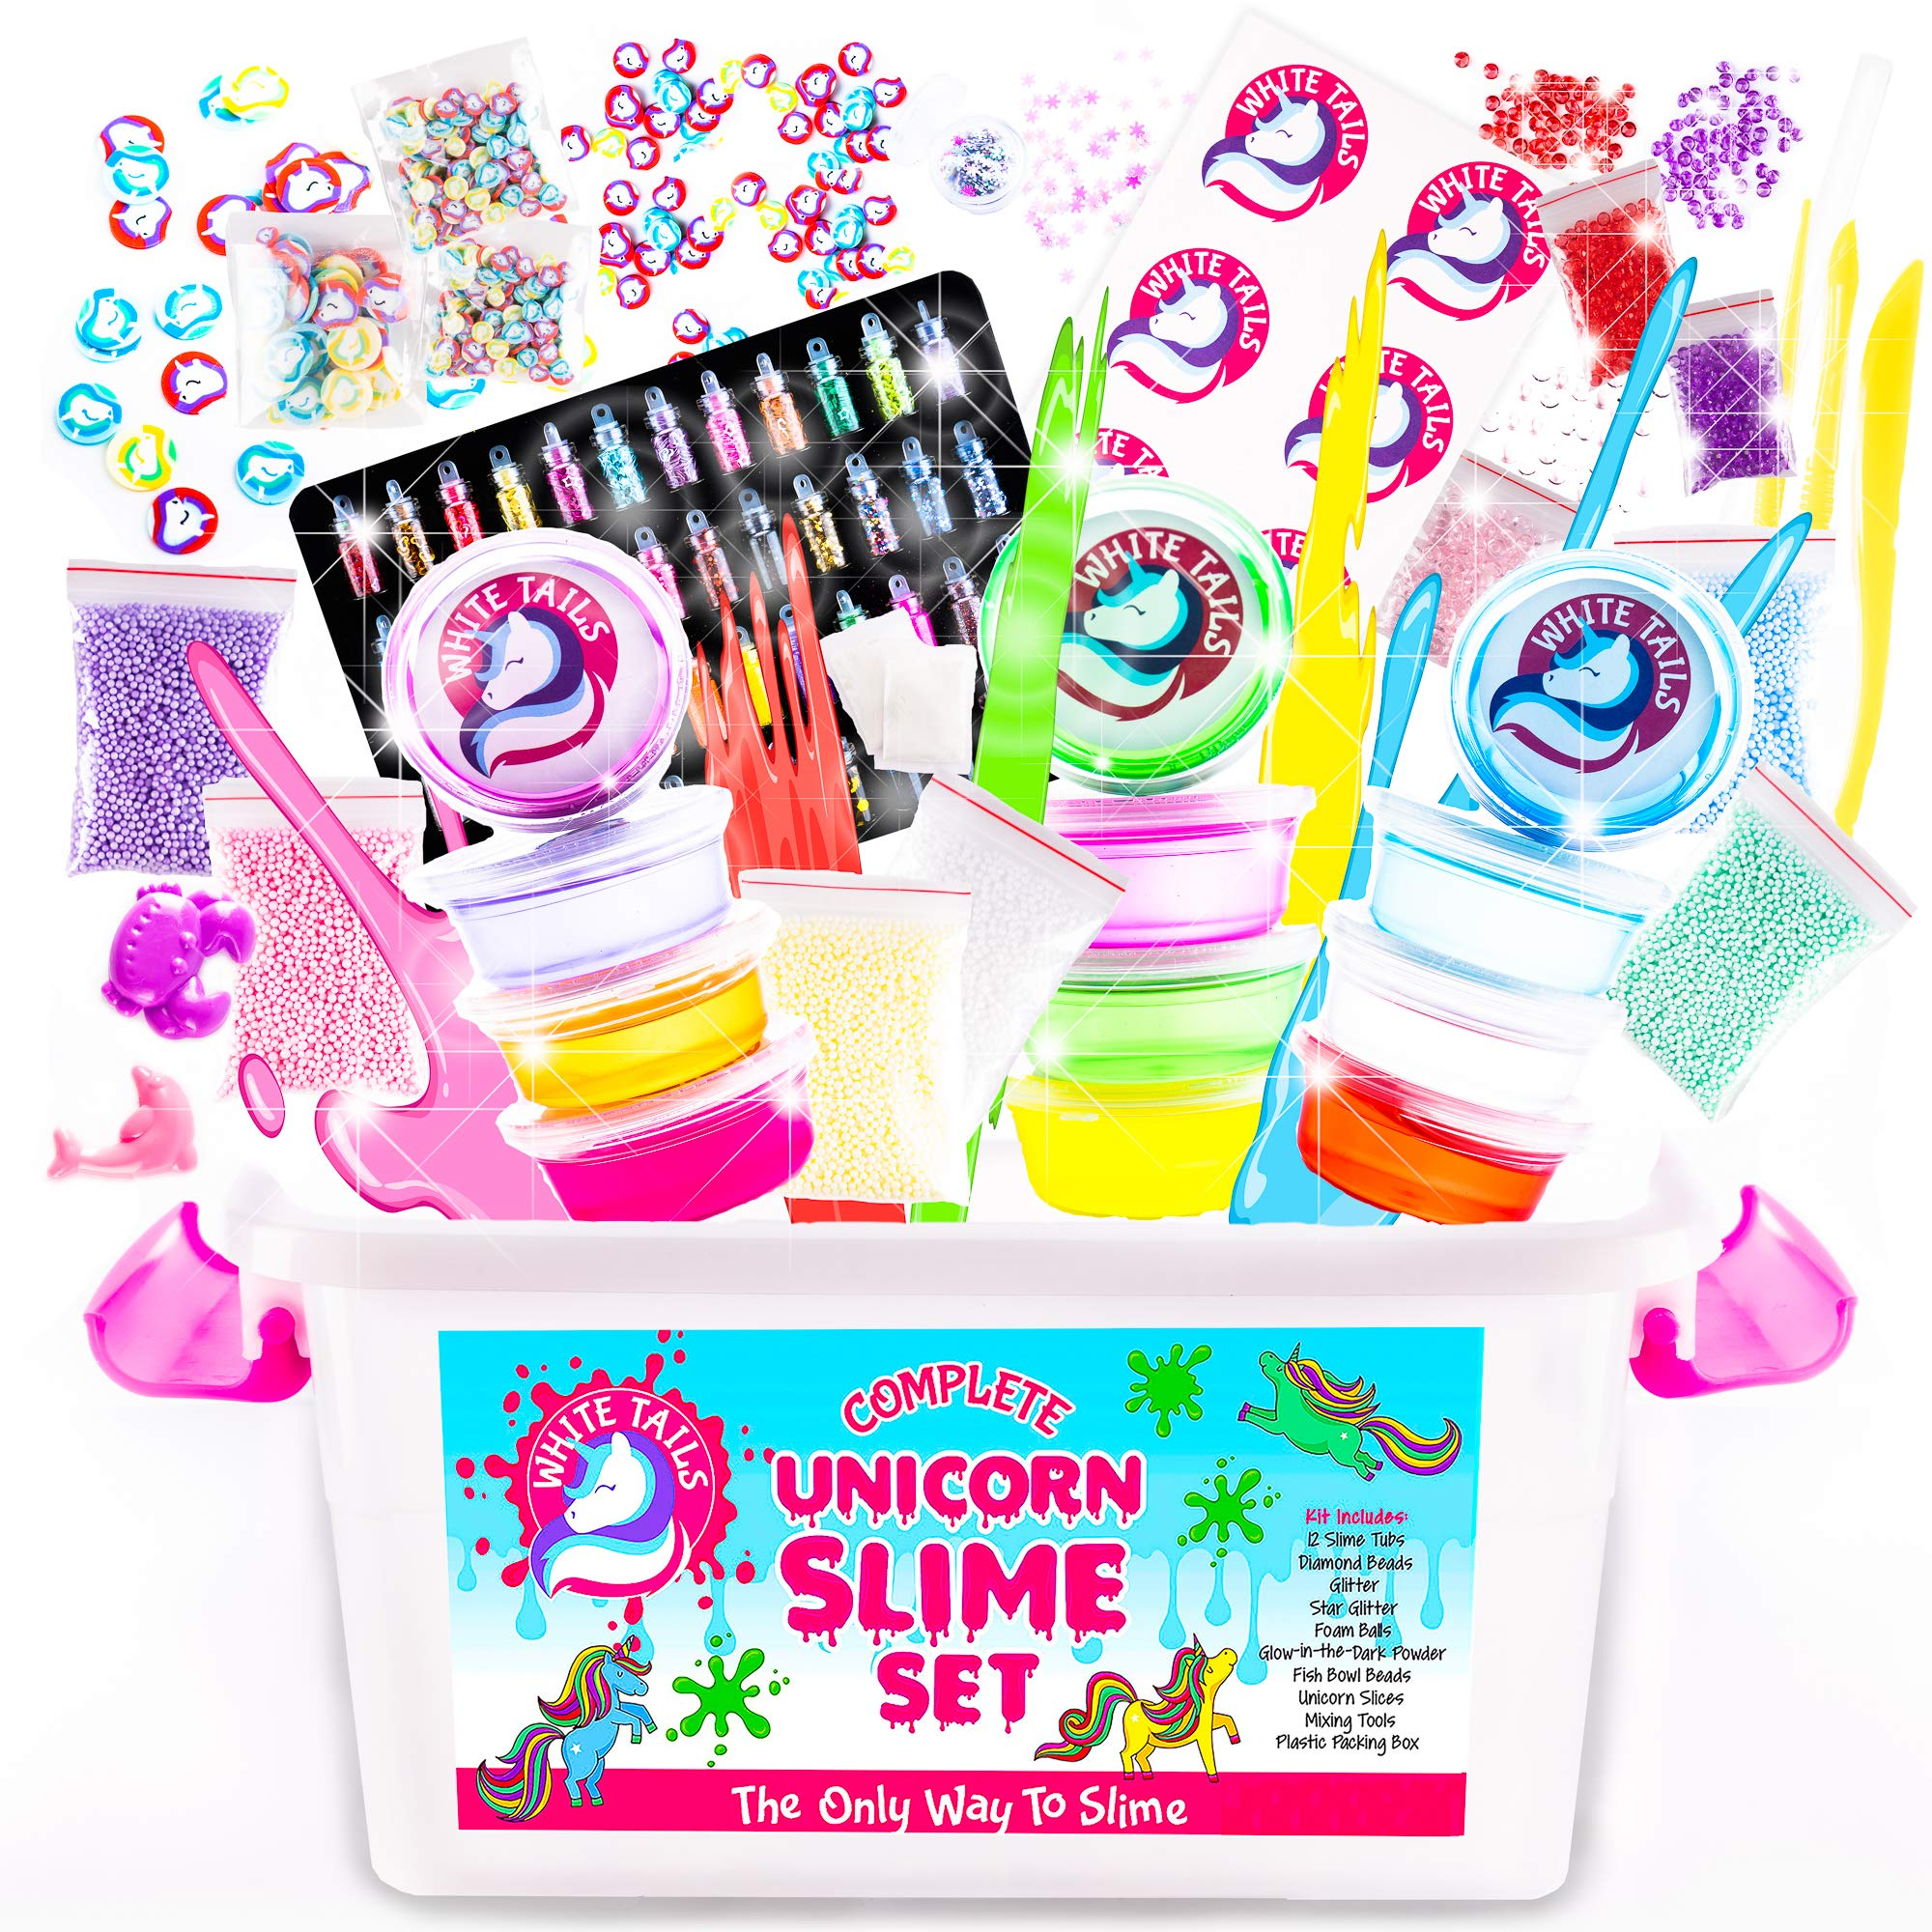 White Tails Unicorn Slime Kit for Girls and Boys 12 Containers of Clear Slime for Kids by White Tails